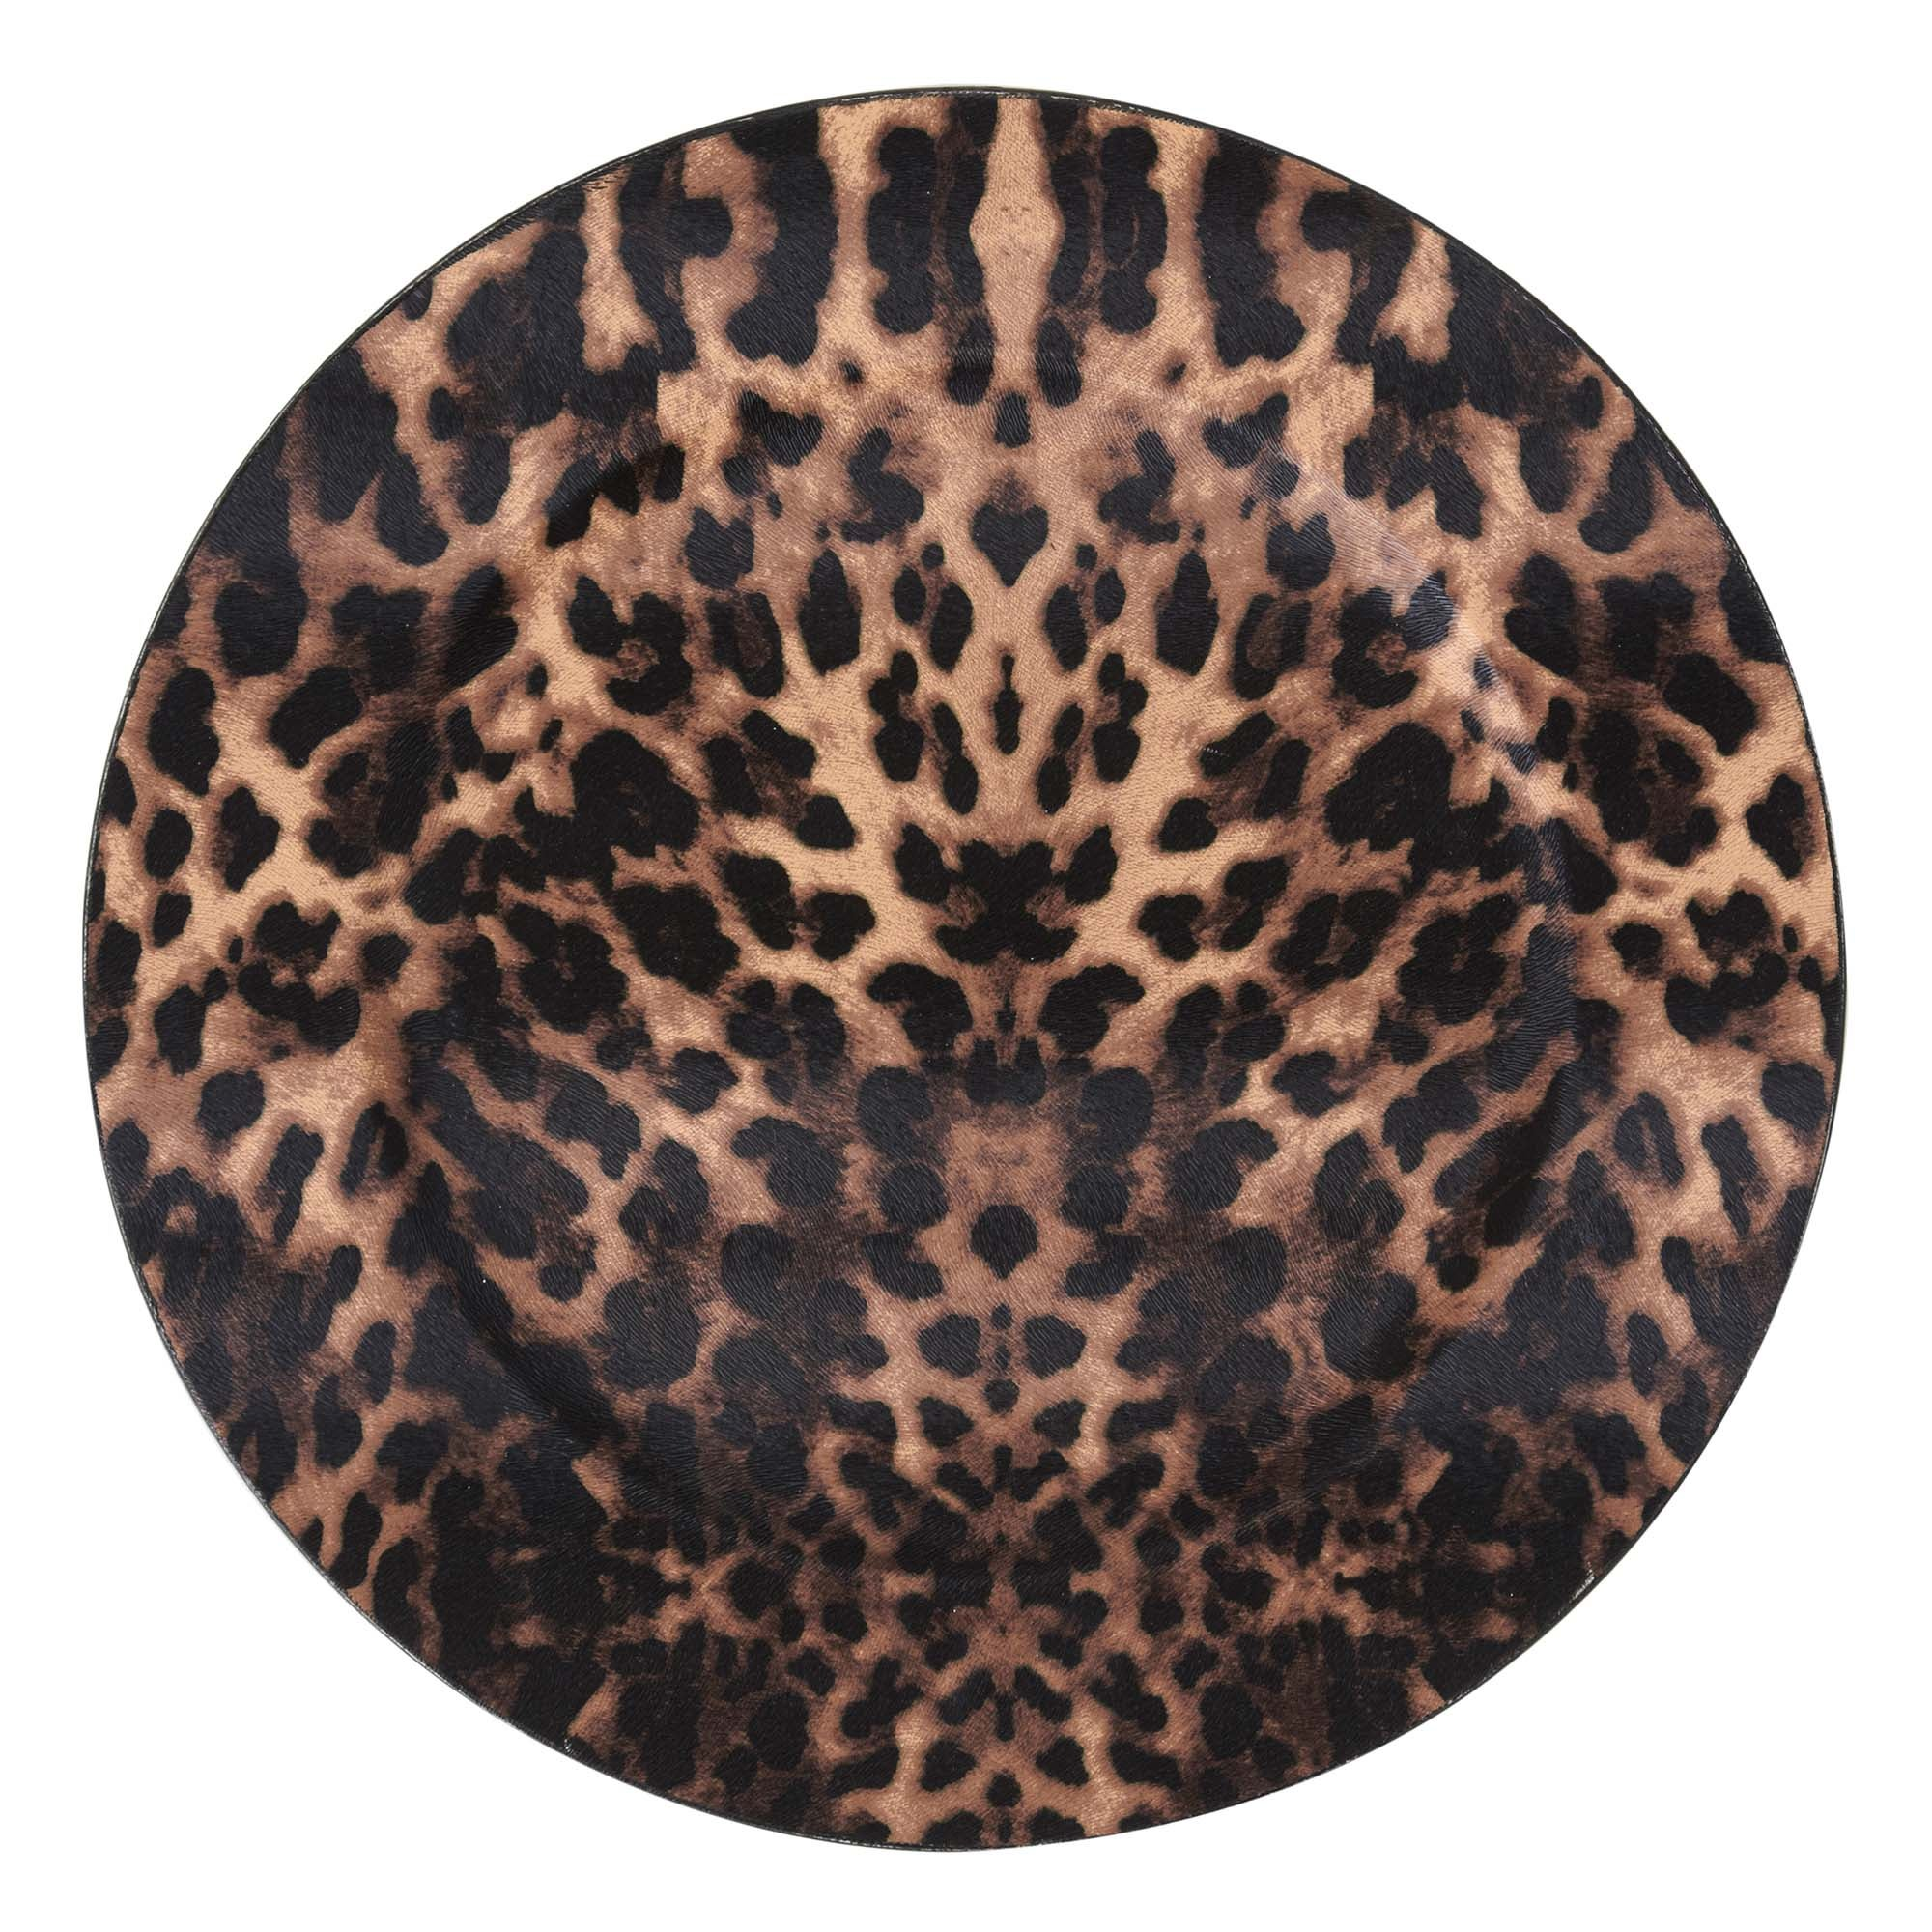 Leopard Print Charger Plate